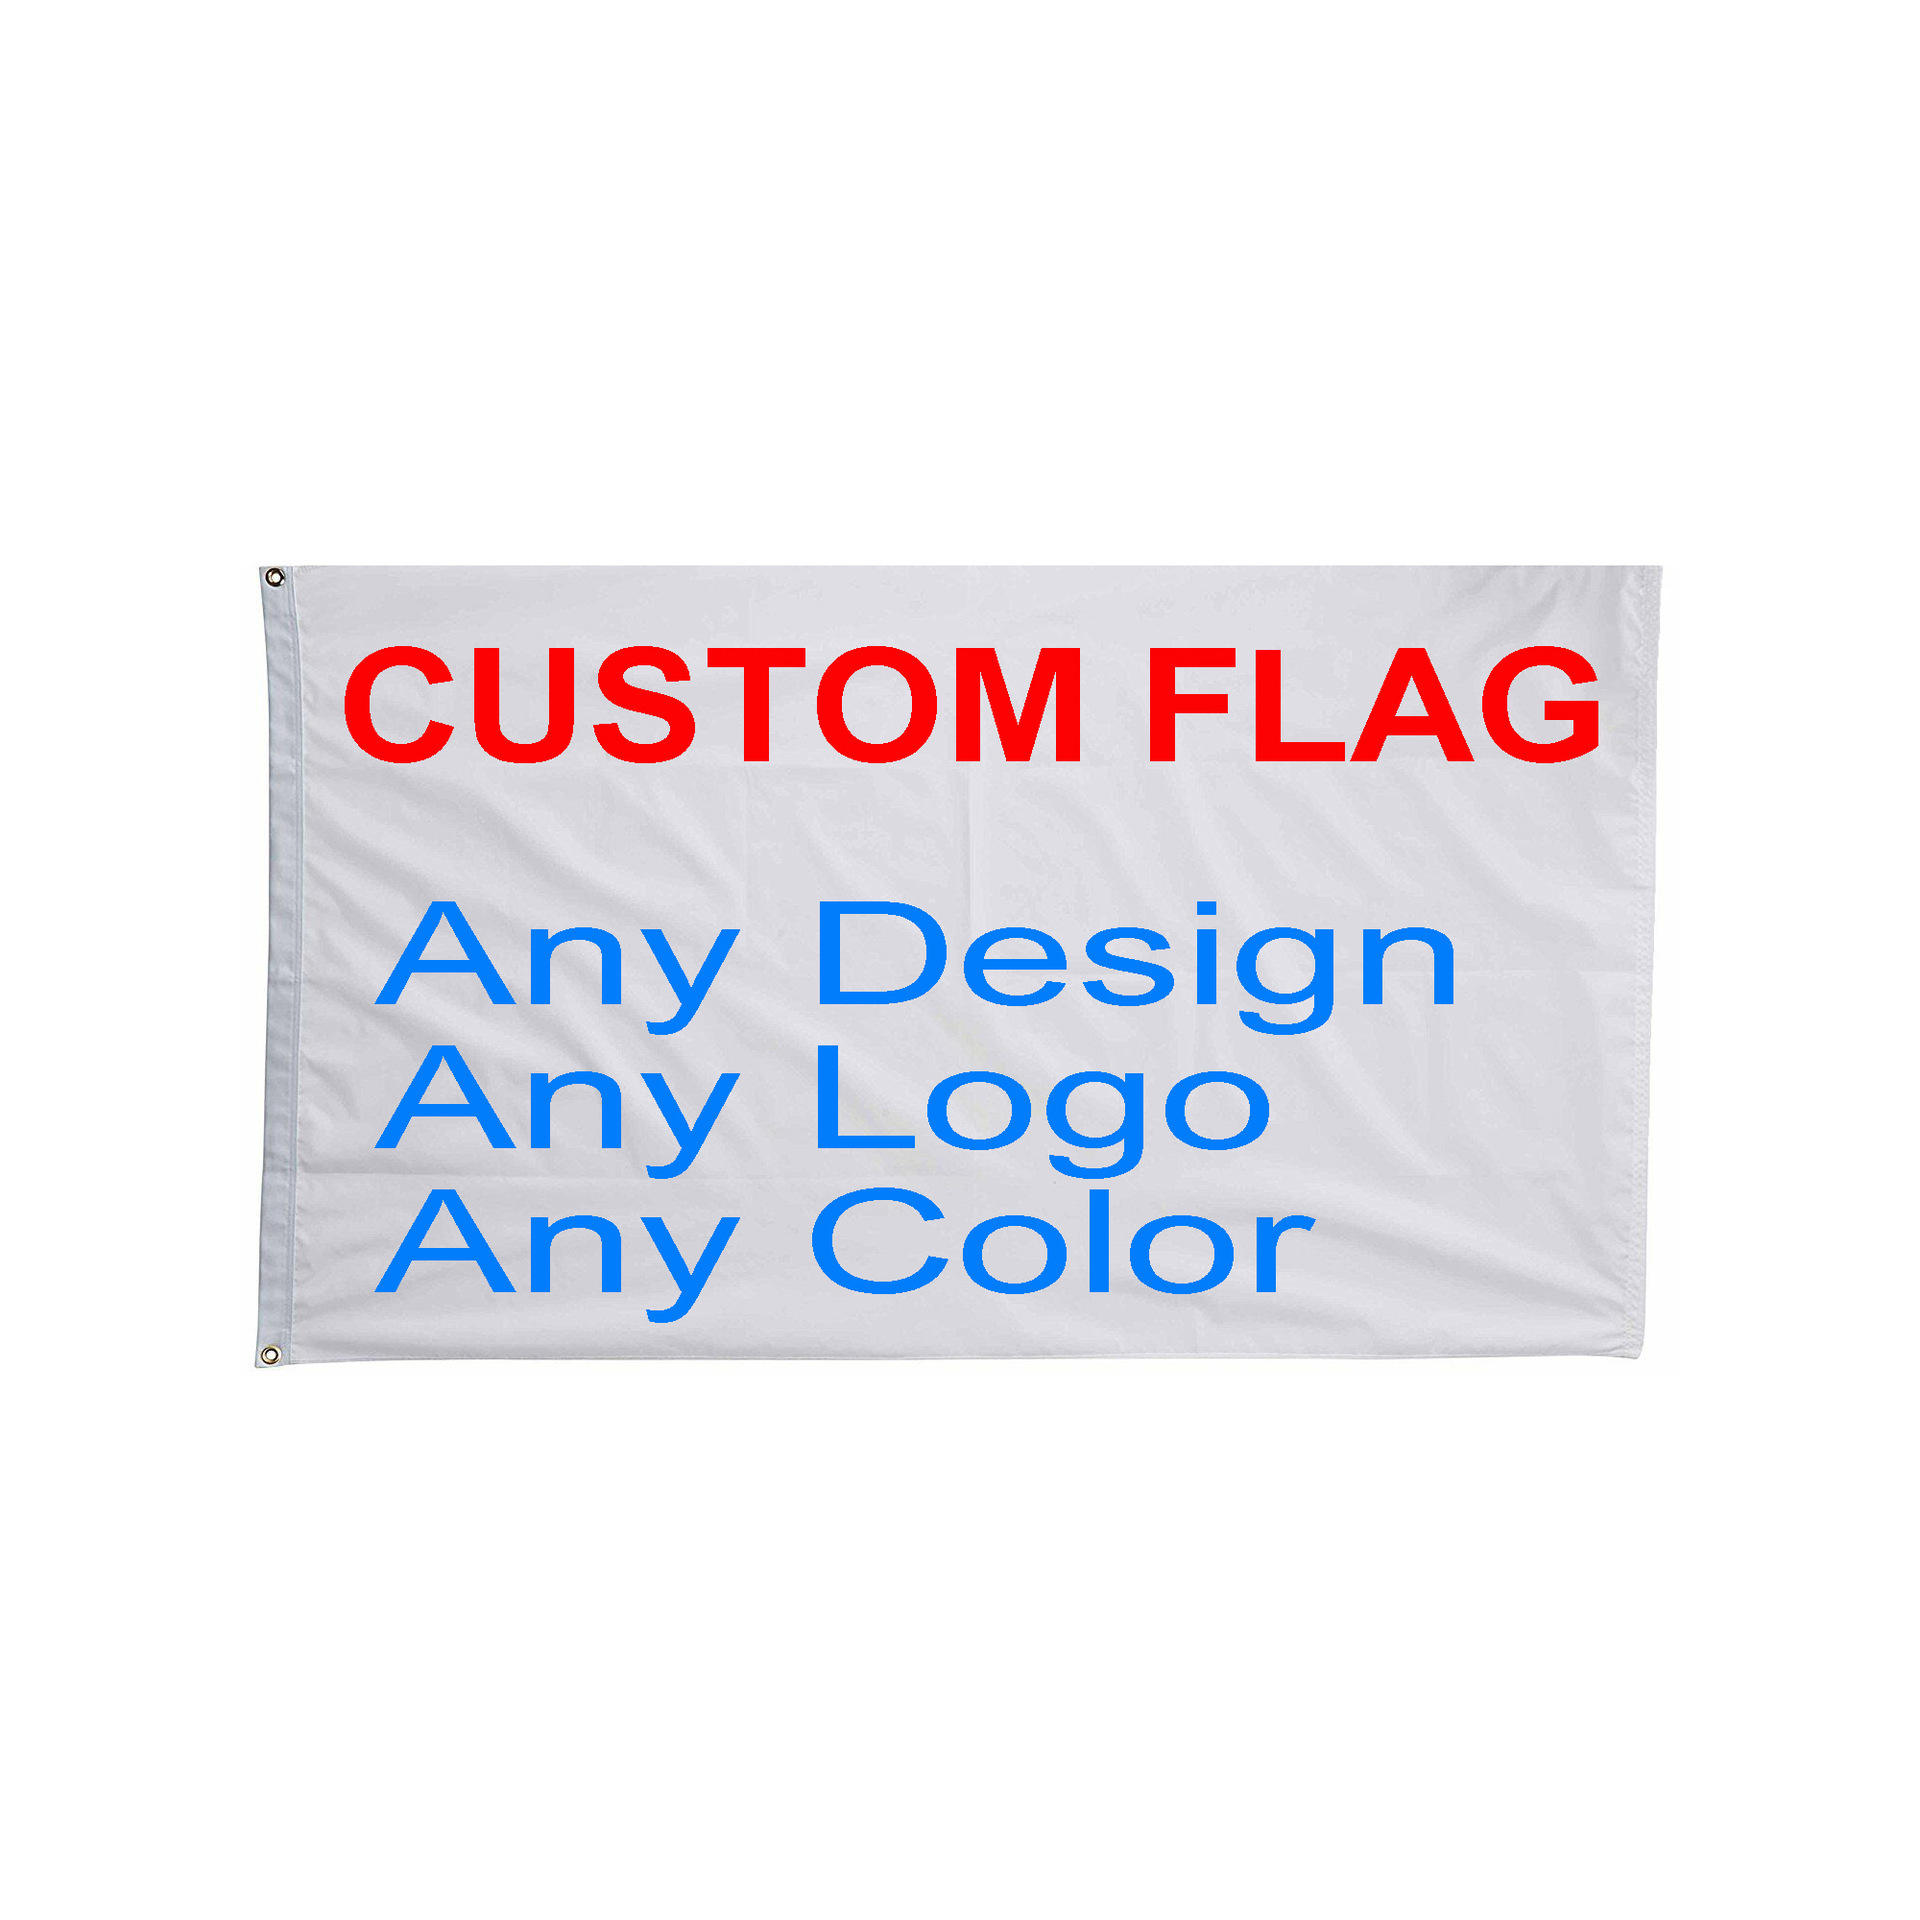 flag manufacturer 48h Fast Delivery Print Your Own Logo Design Words Advertising Flag 3x5 Ft Customized Flags Banners